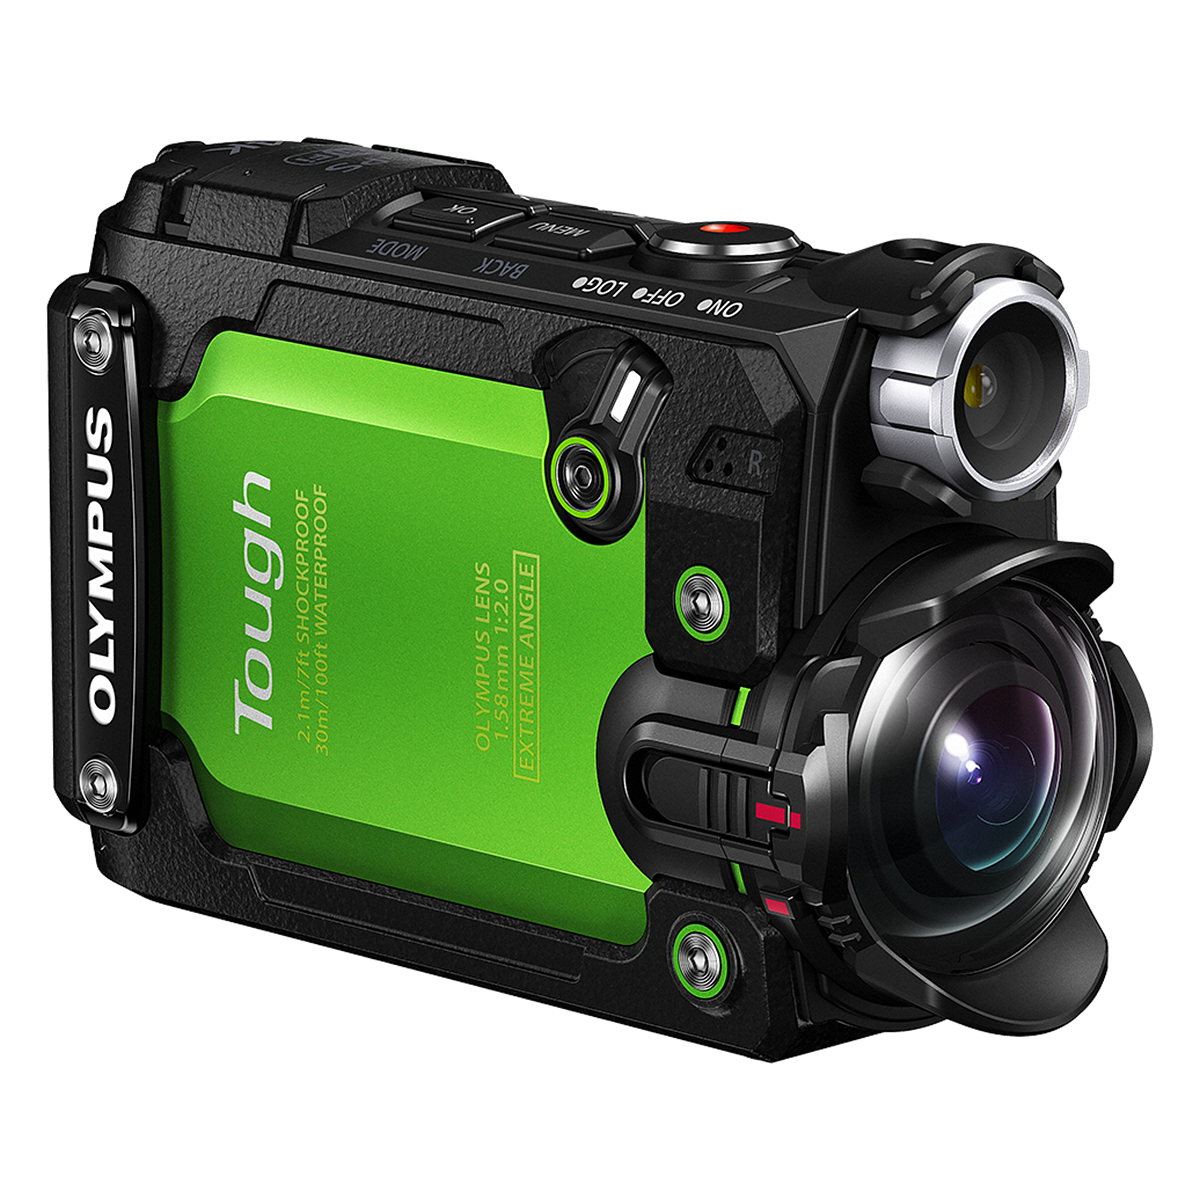 olympus tg tracker keeps up with your outdoor adventures digital rh dpreview com olympus tg 4 user manual olympus digital 800 camera manual